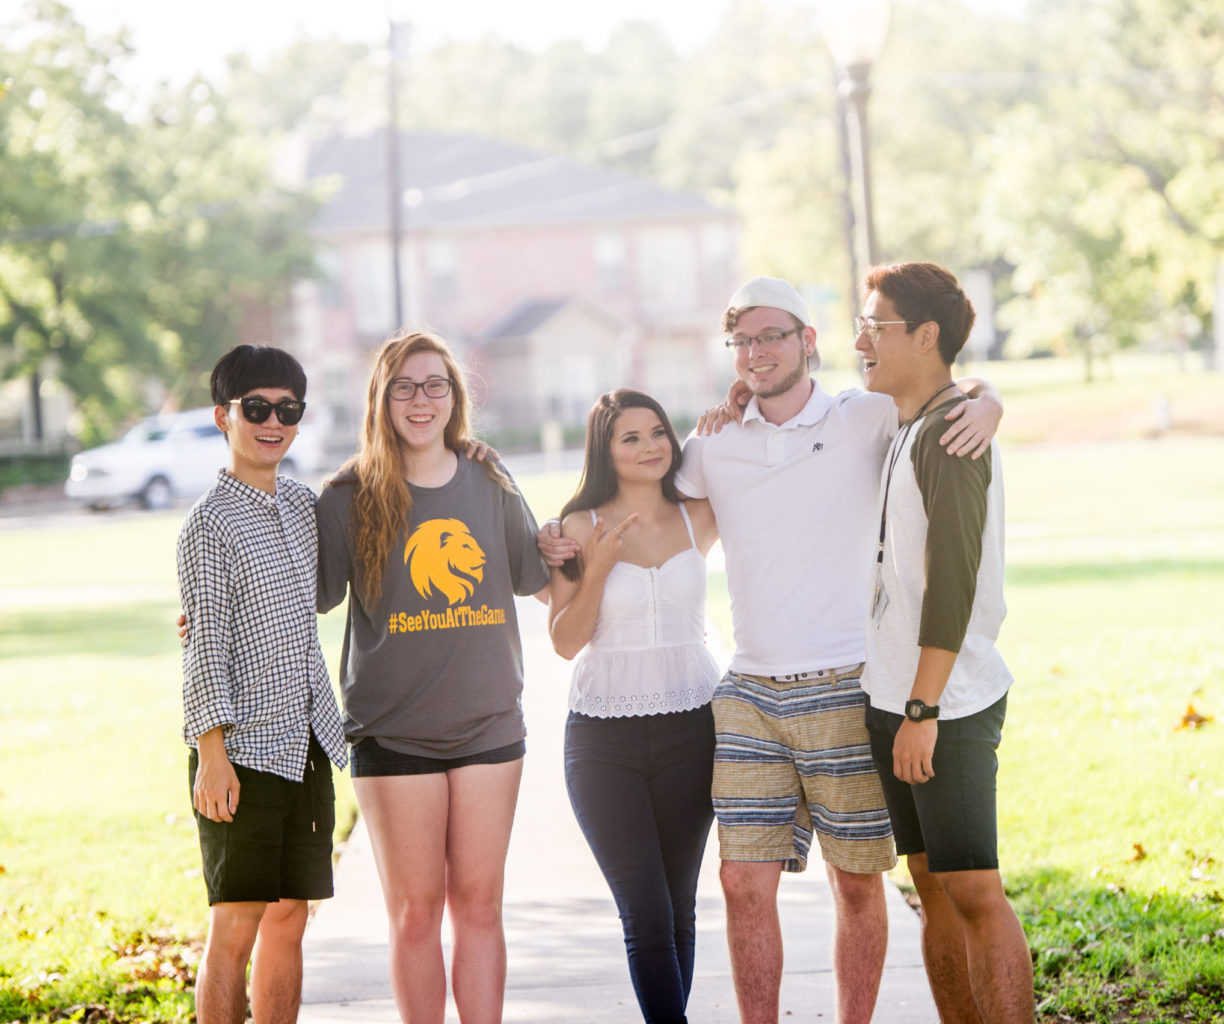 English students standing together on campus.